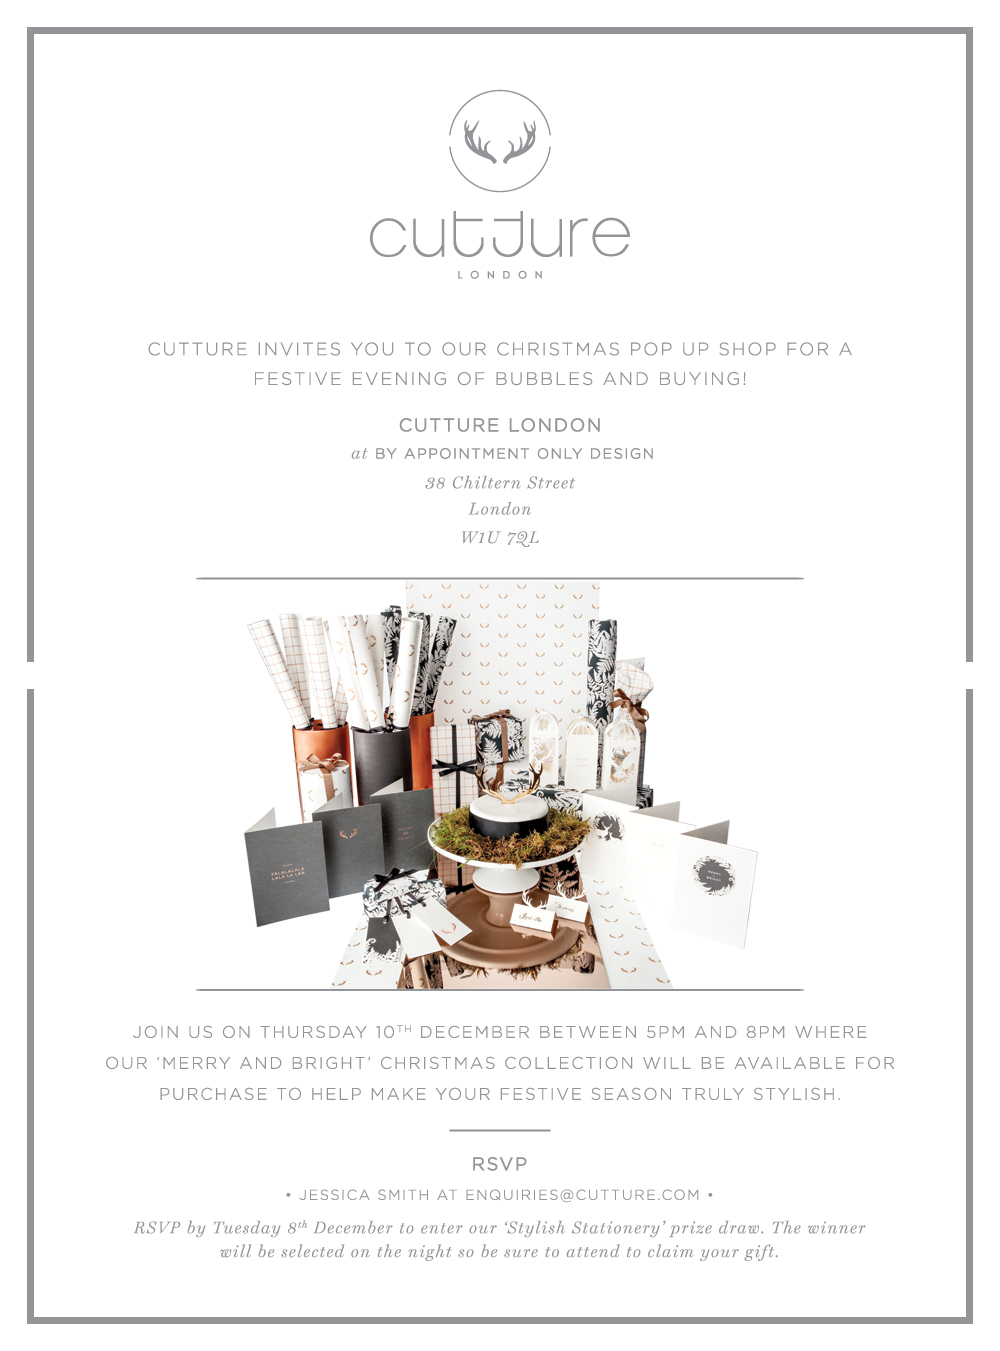 Cutture-Merry-&-Bright-Invitation